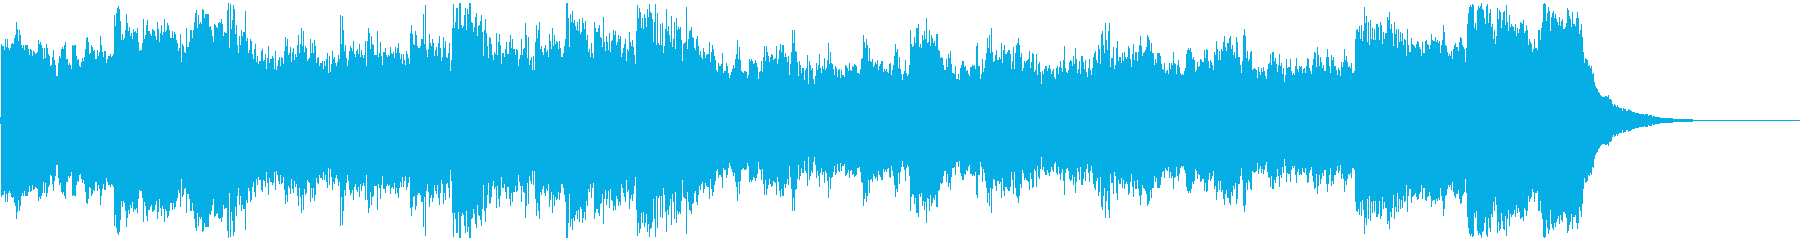 A magnificent and melodious jingle with an orchestral sound source's reproduced waveform